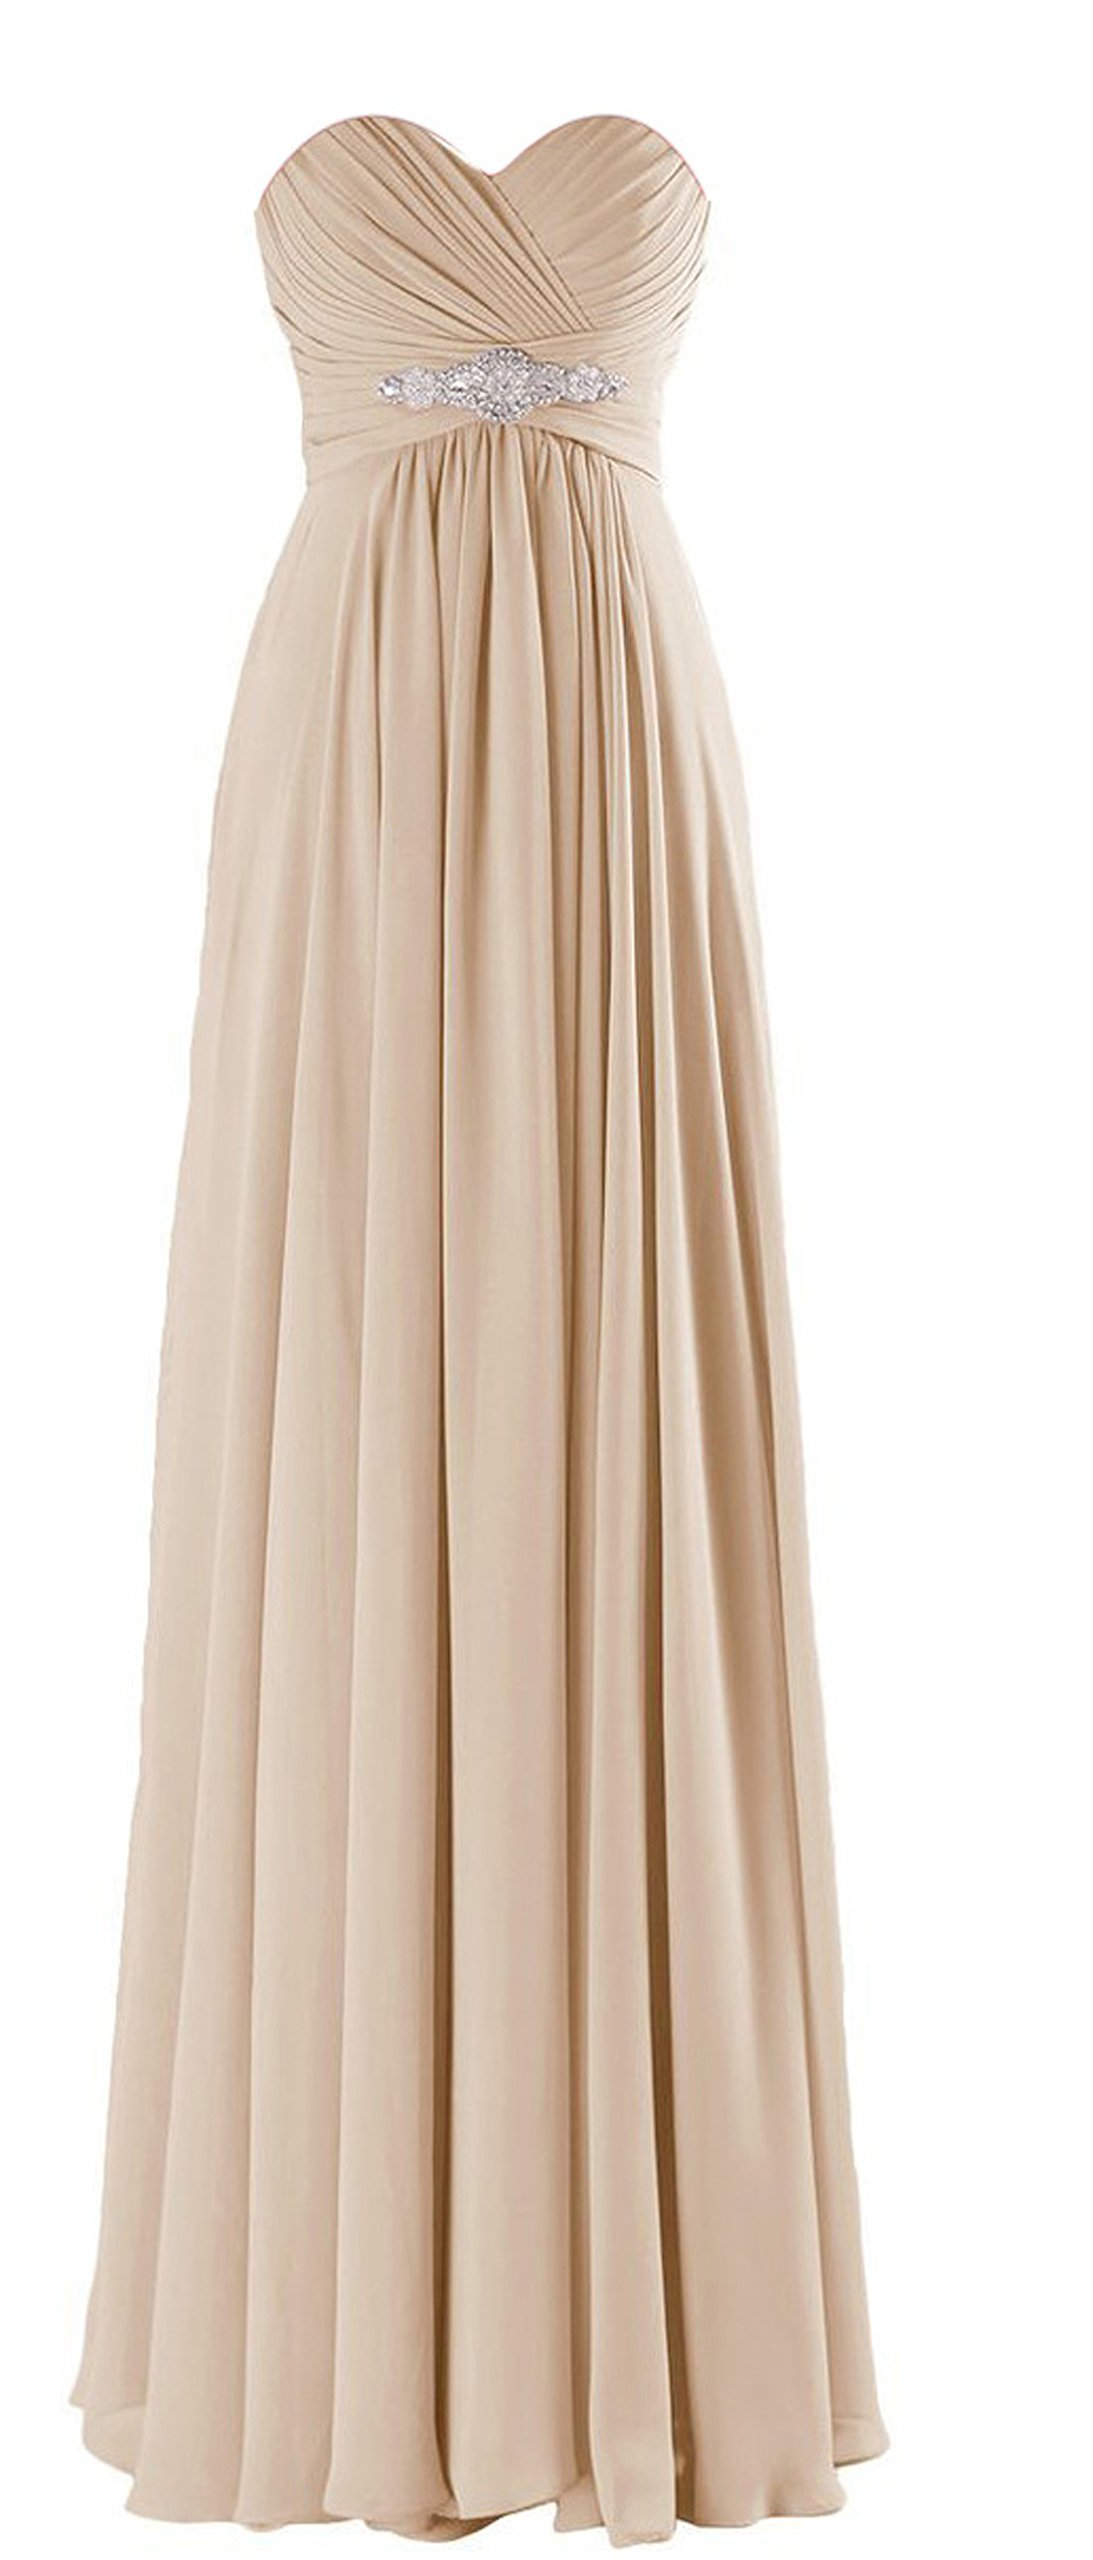 ThaliaDress Long Chiffon Sweetheart Evening Bridesmaid Dresses Prom Gowns T002LF Champagne US24W